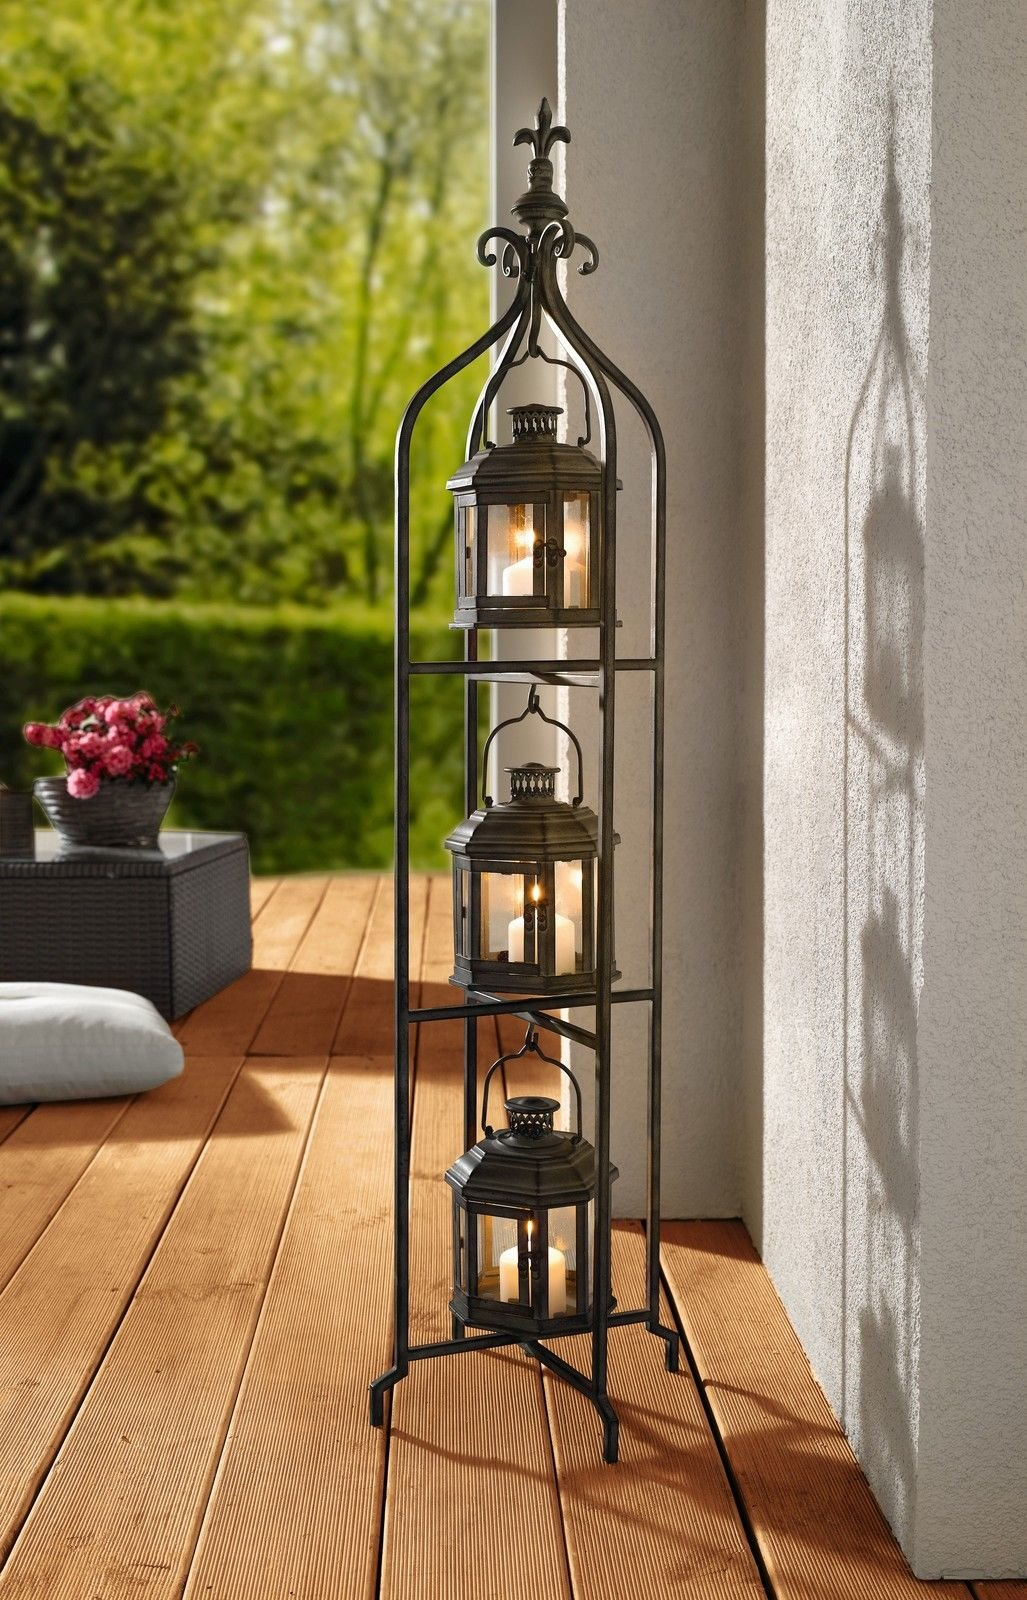 PierSurplus Metal Candle Lanterns with Stand - Three-Tier Lantern Stand for Yard Product SKU: CL221880